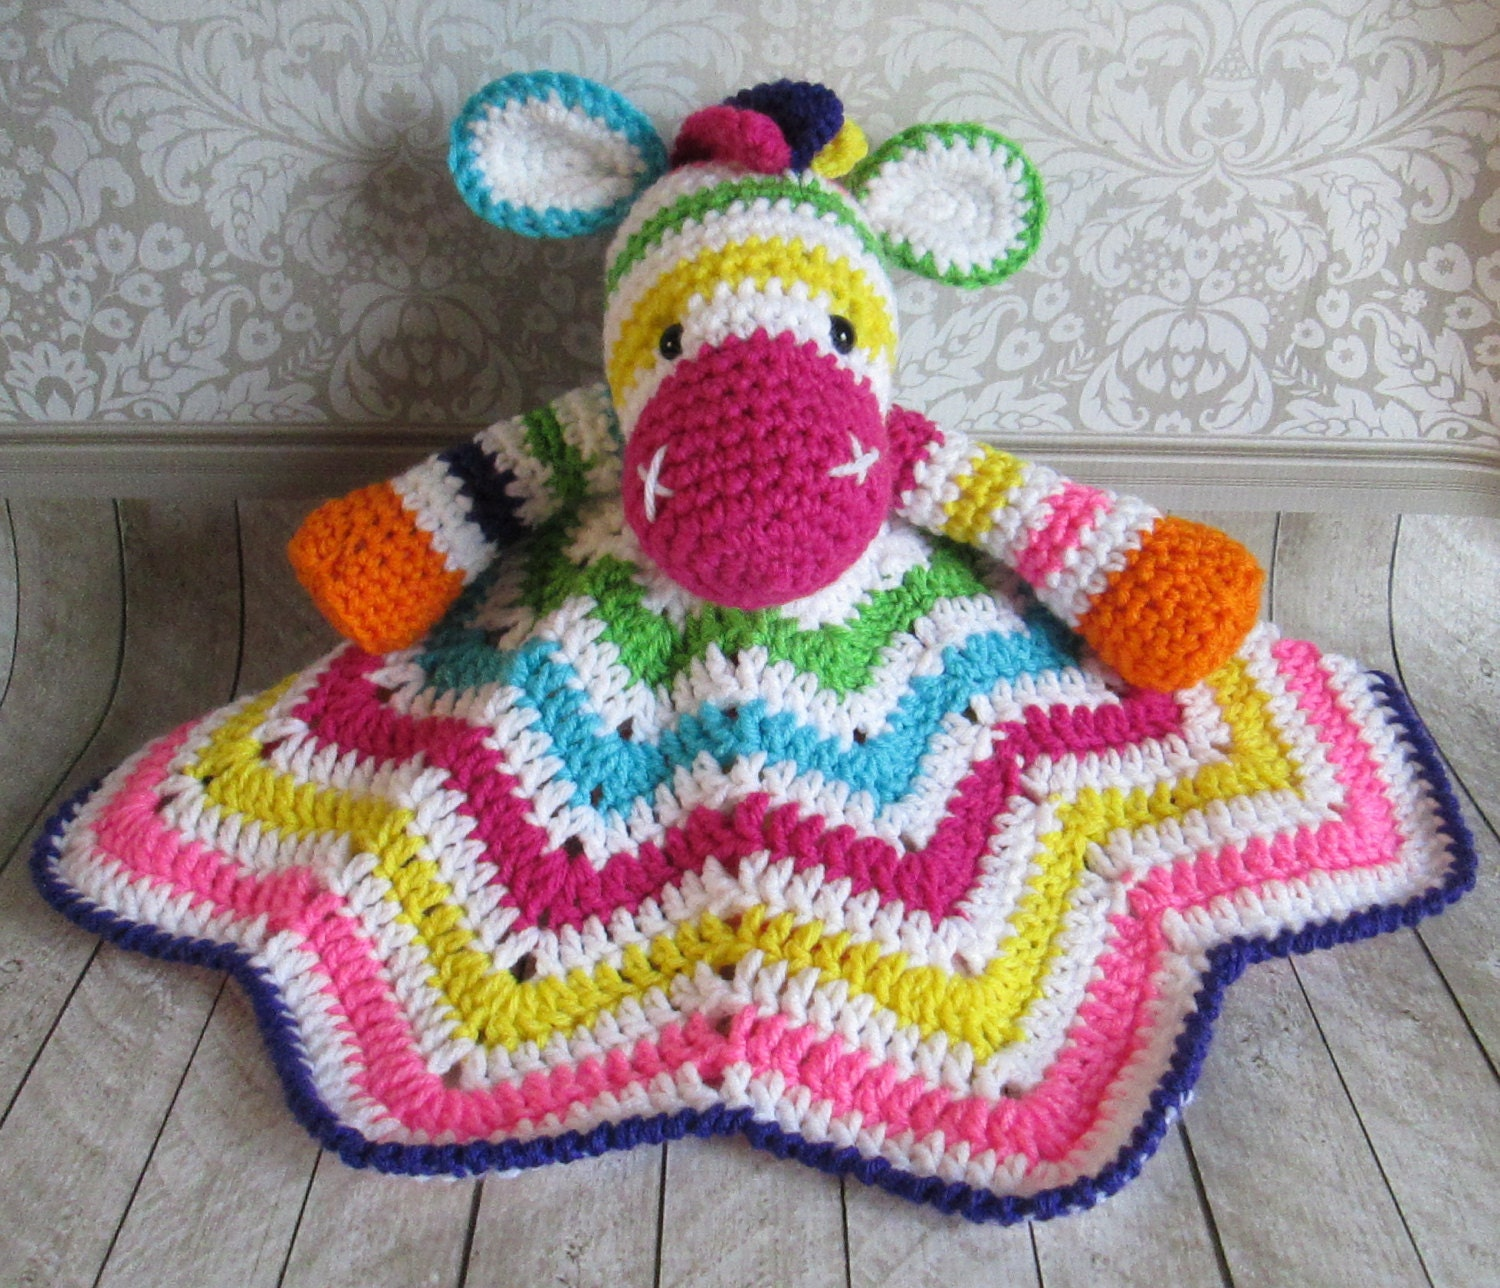 Crochet Zebra Blanket : Zoey the Zebra Crochet Lovey Blanket Rainbow by turnipsandparsnips